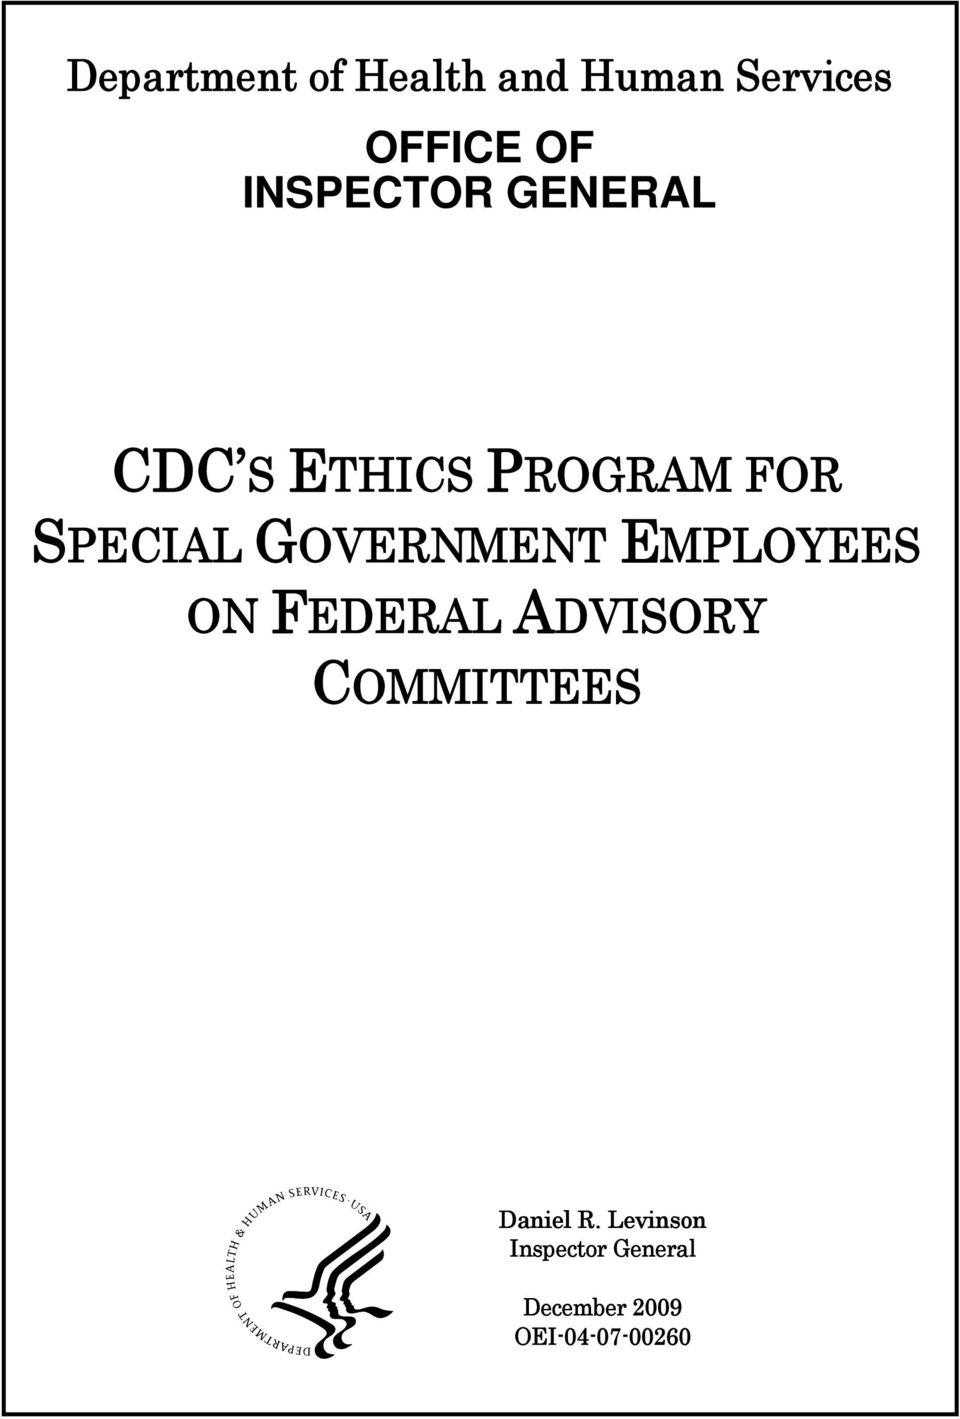 GOVERNMENT EMPLOYEES ON FEDERAL ADVISORY COMMITTEES